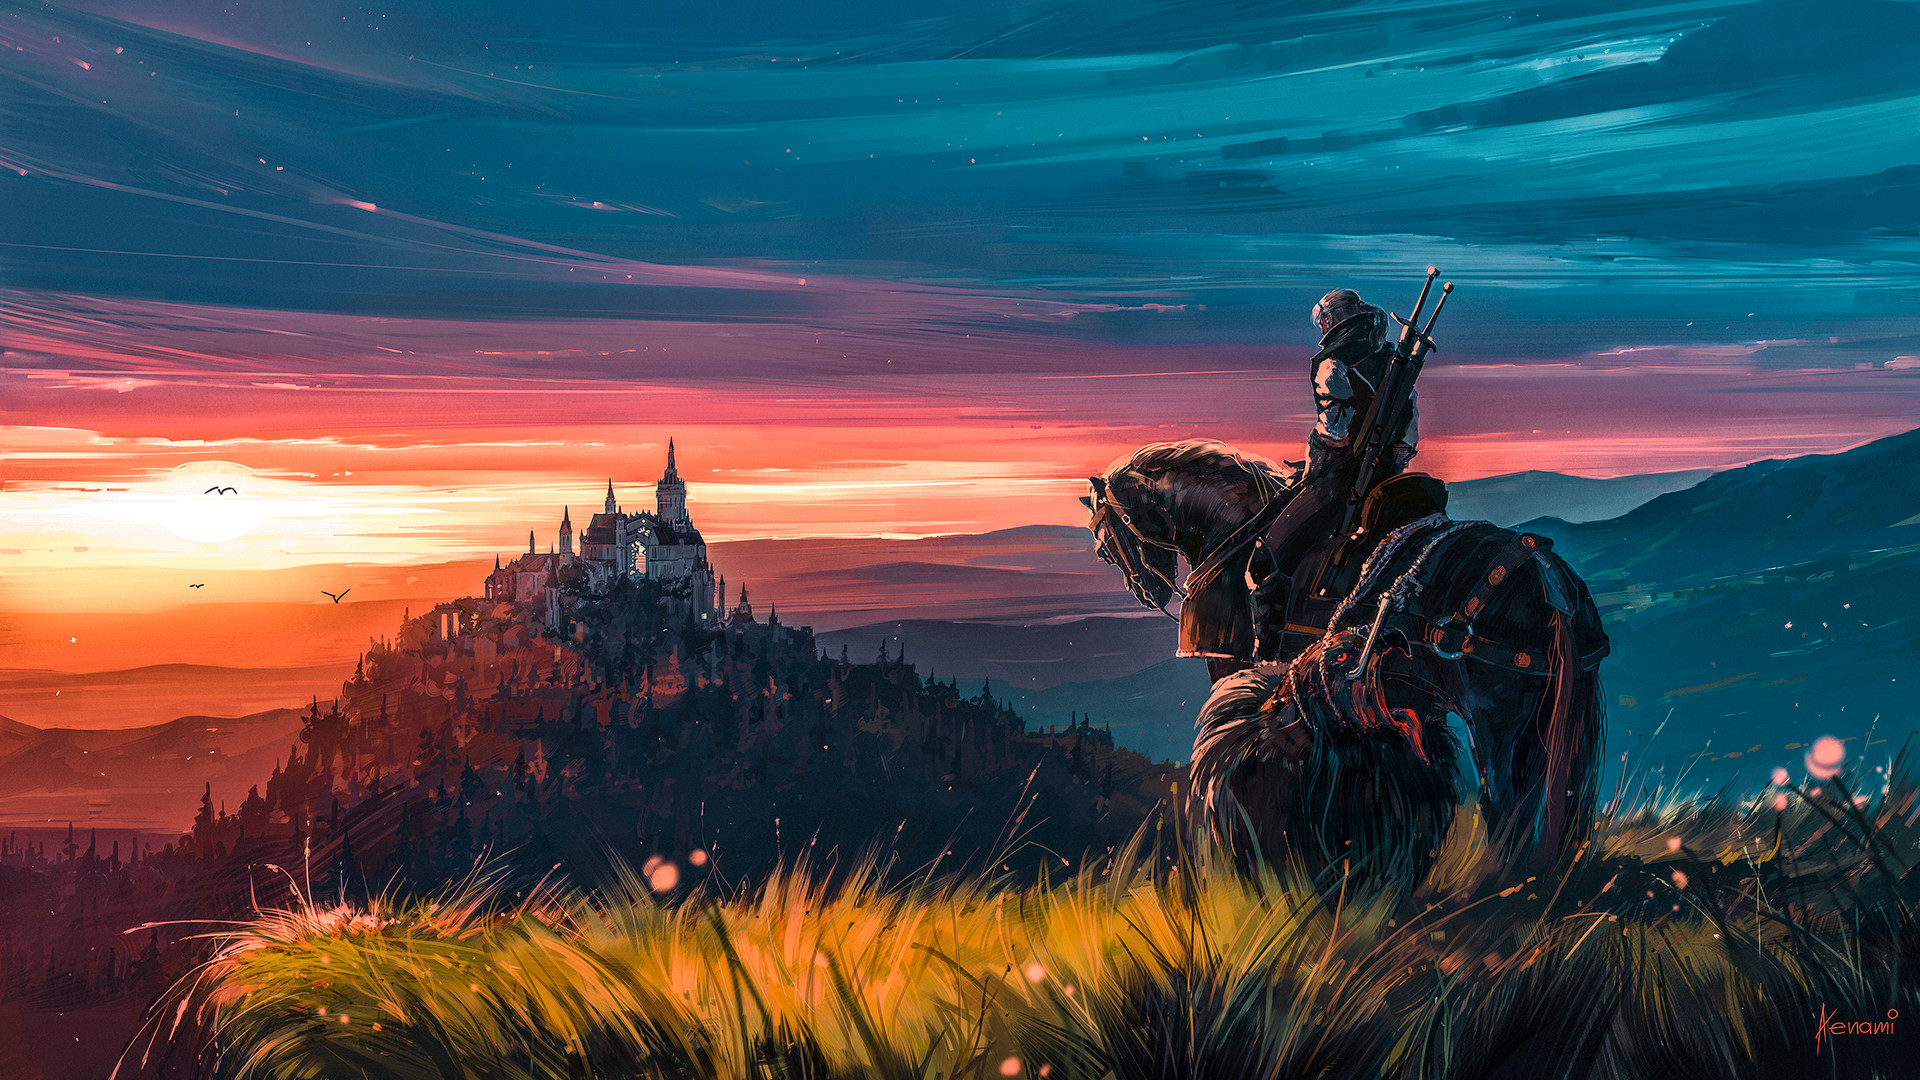 General 1920x1080 warrior horse painting sky Aenami video games The Witcher Geralt of Rivia The Witcher 3: Wild Hunt - Blood and Wine sword Kingdom castle evening grass